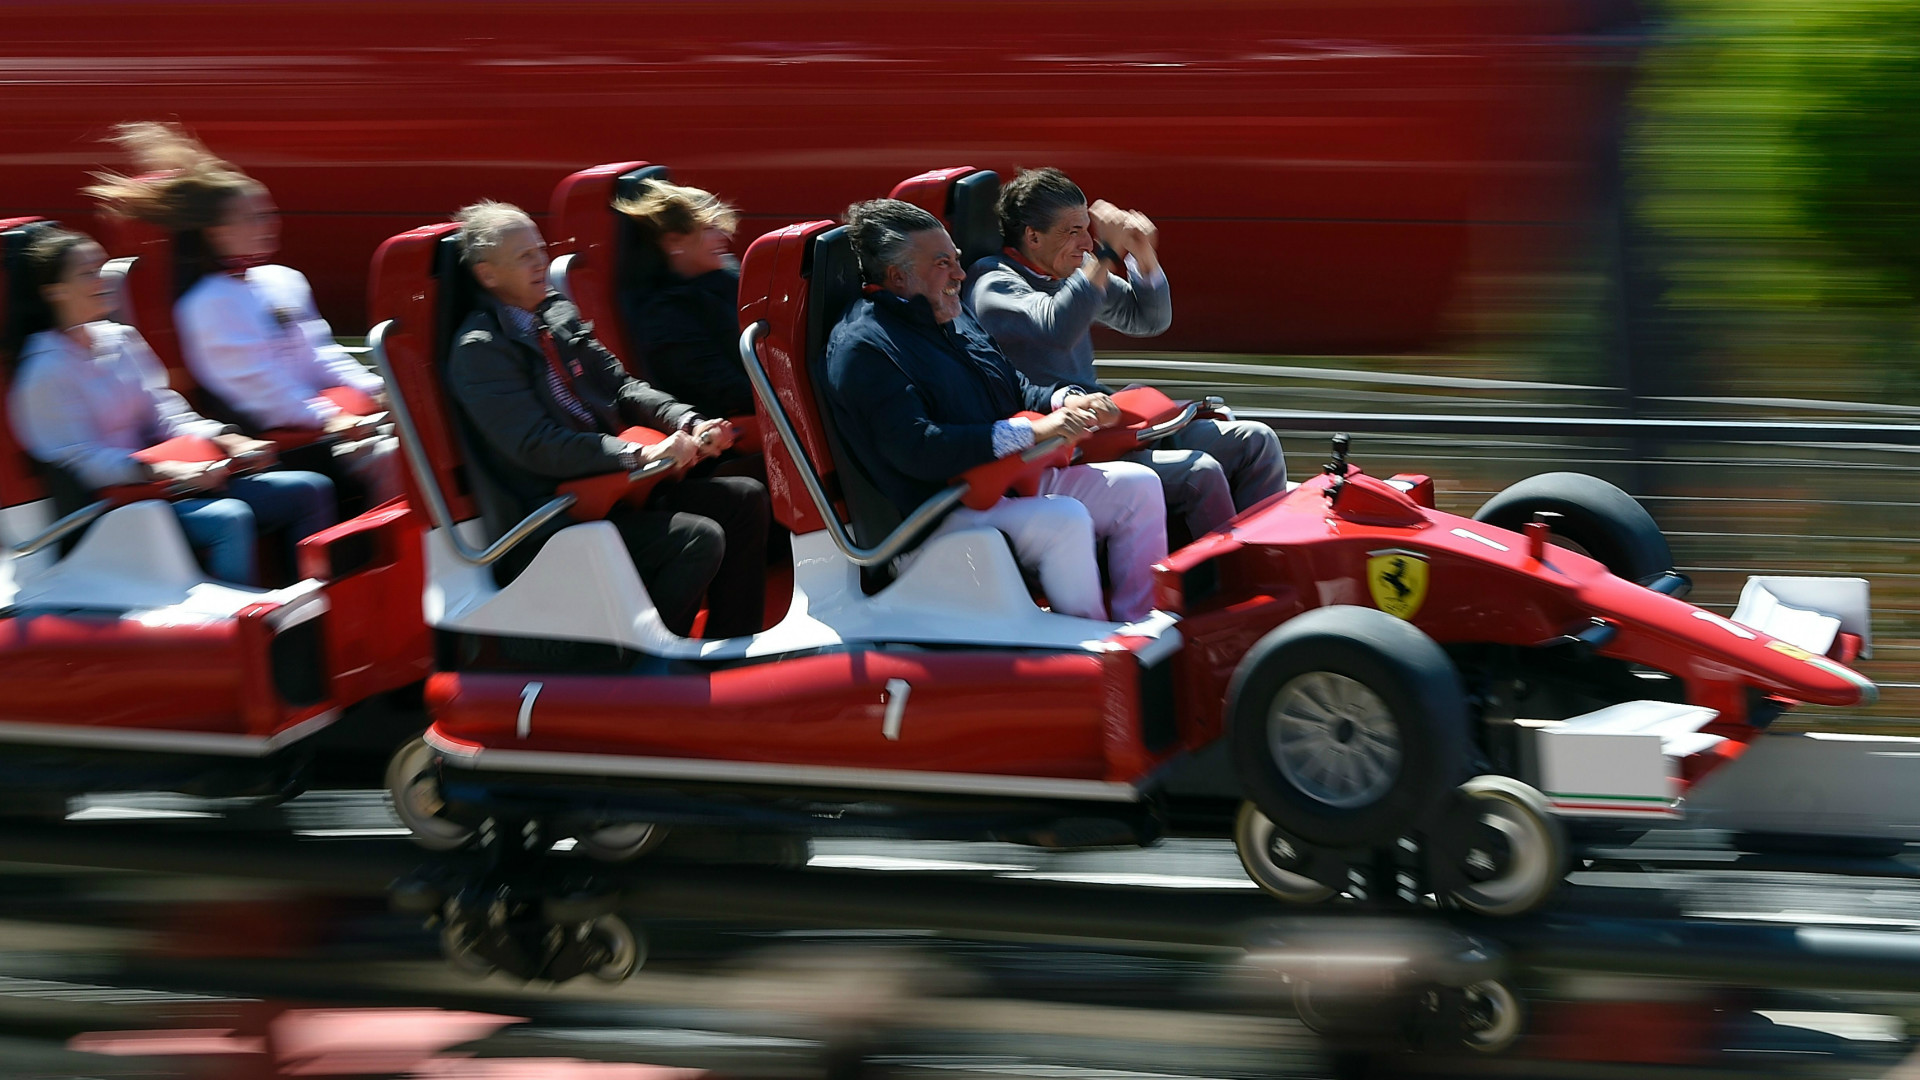 The Red Force Ferrari in action.